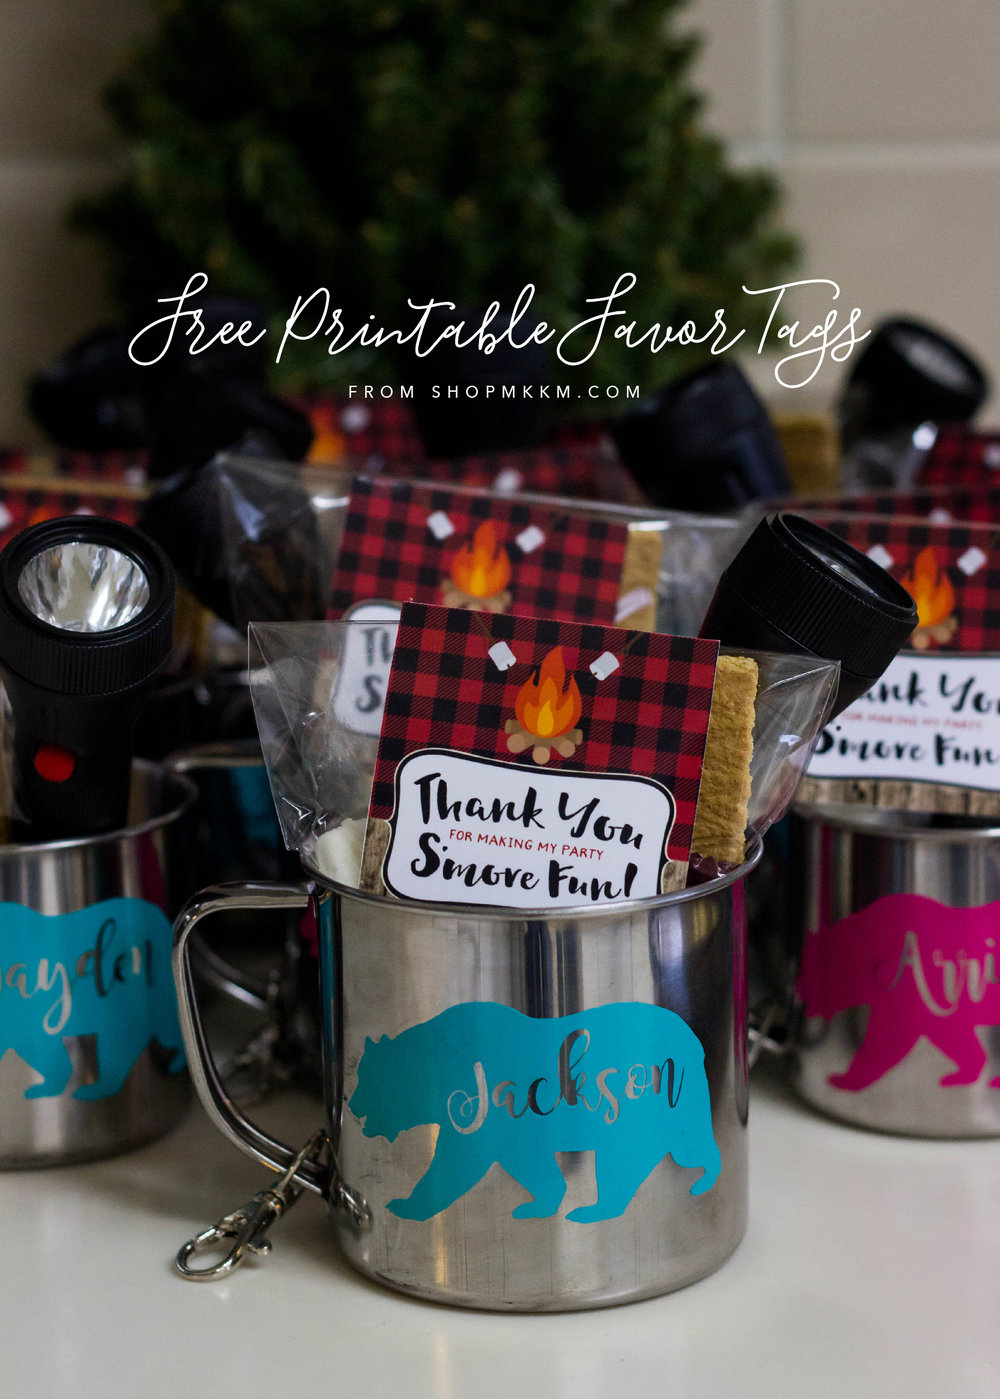 Free Printable Favor Tags. Thank You For Making My Party S'more Fun.